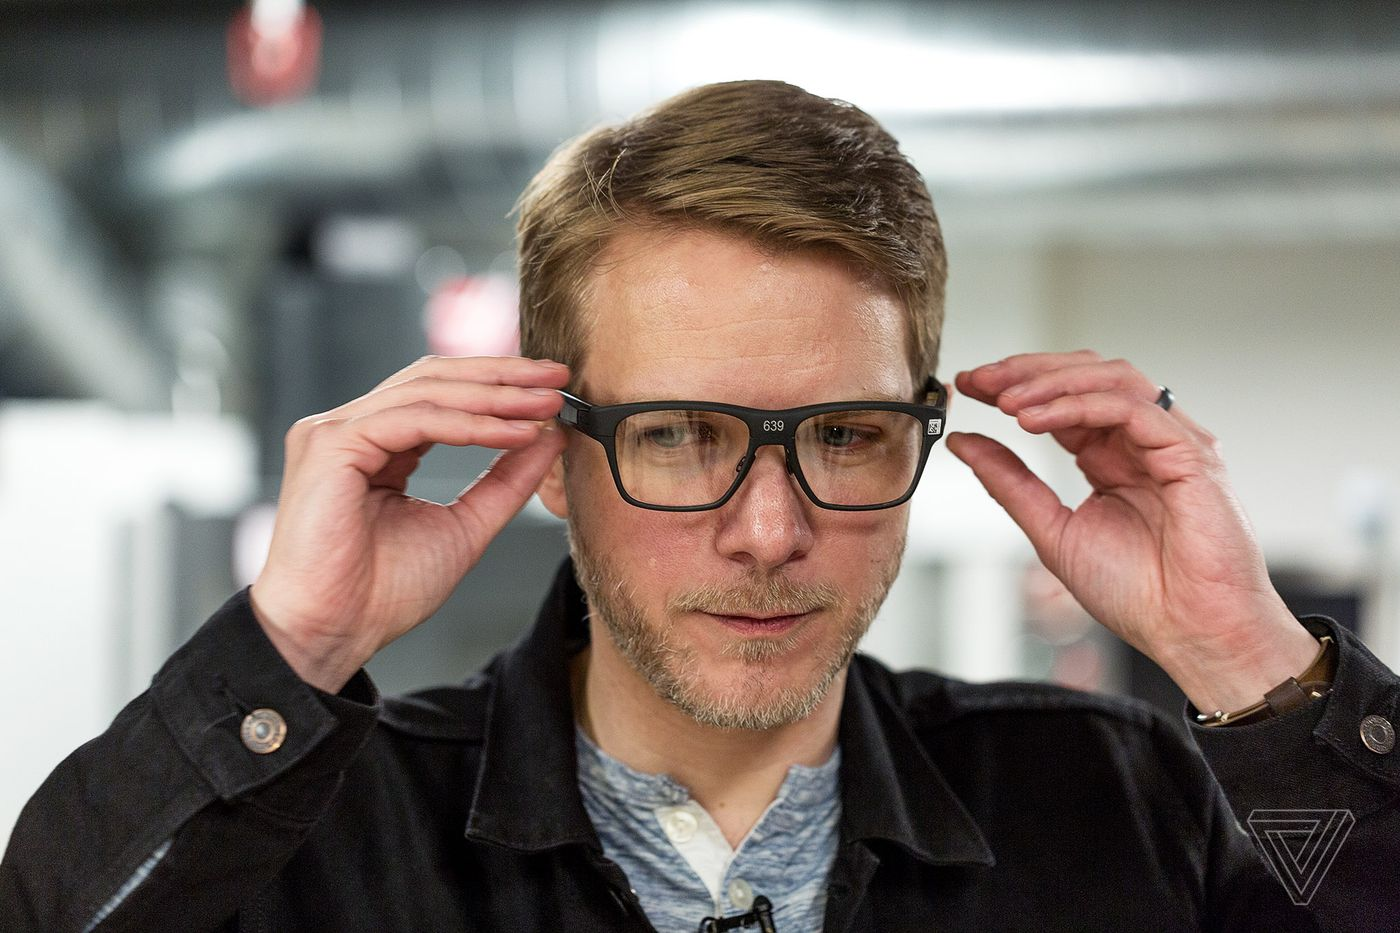 Exclusive: Intel's new Vaunt smart glasses actually look good - The